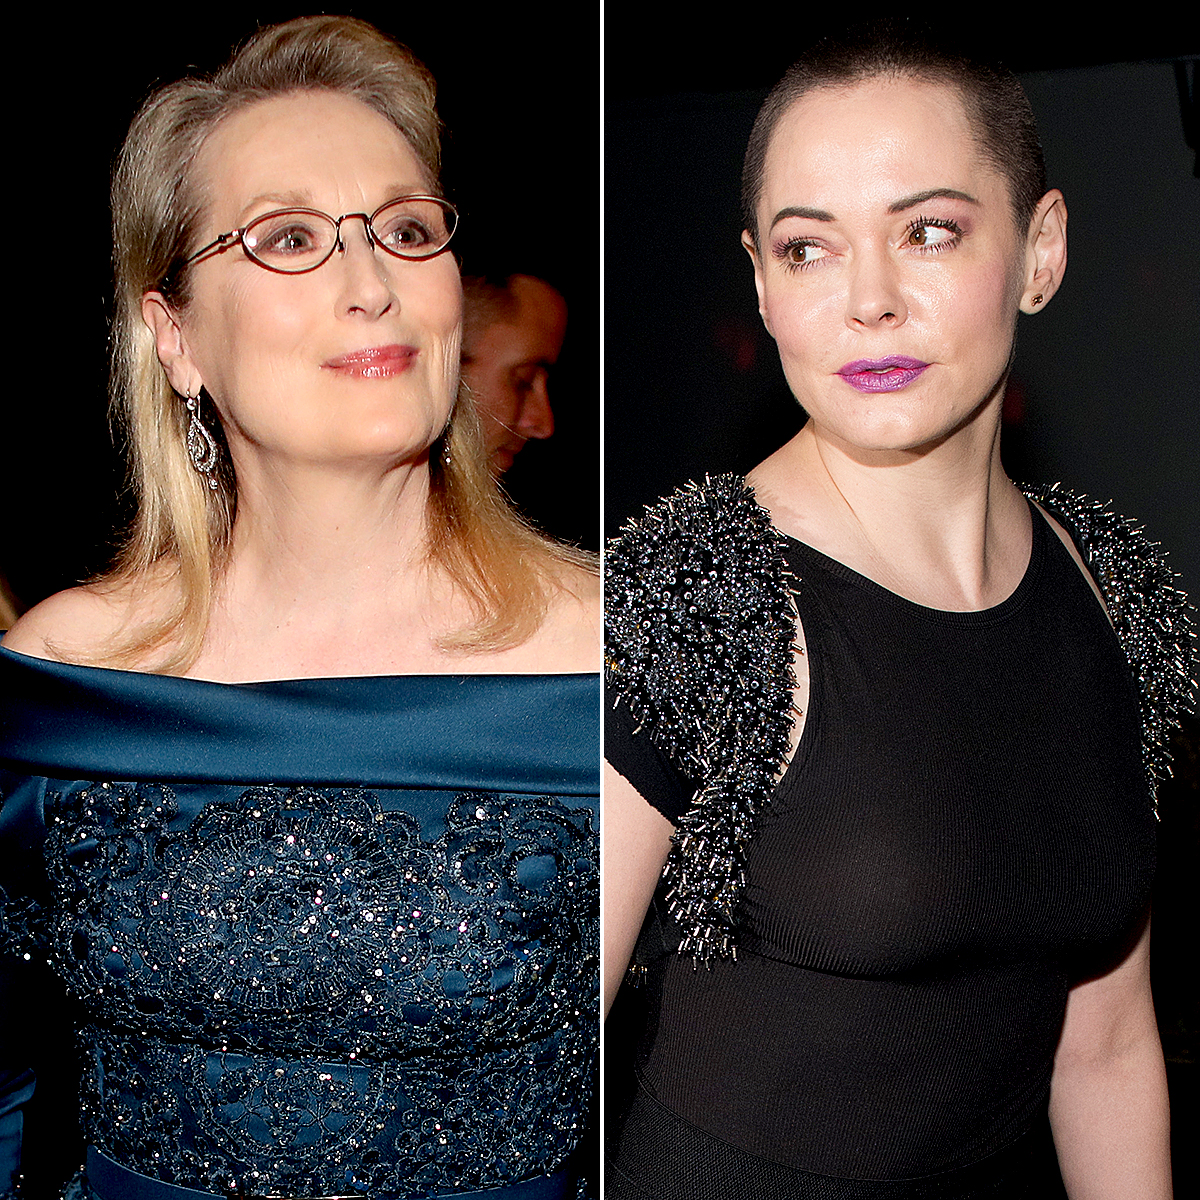 Rose McGowan Slams Meryl Streep For Silent Protest Planned For Golden Globes